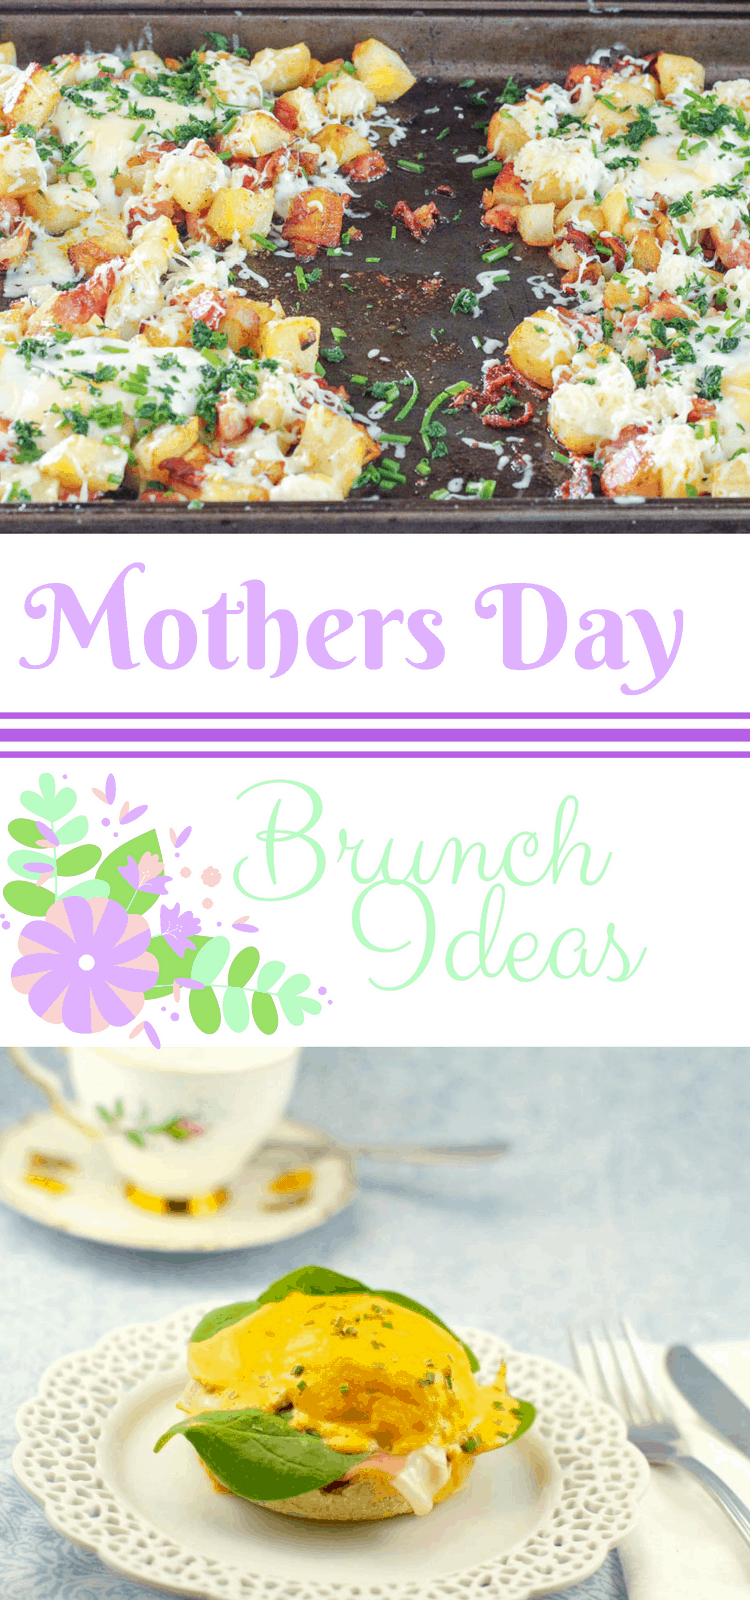 Easy Mothers Day Brunch Recipes - This round-up features everything you need to make sure mom has a special day! #MothersDay #BrunchRecipes #EasyBrunchIdeas